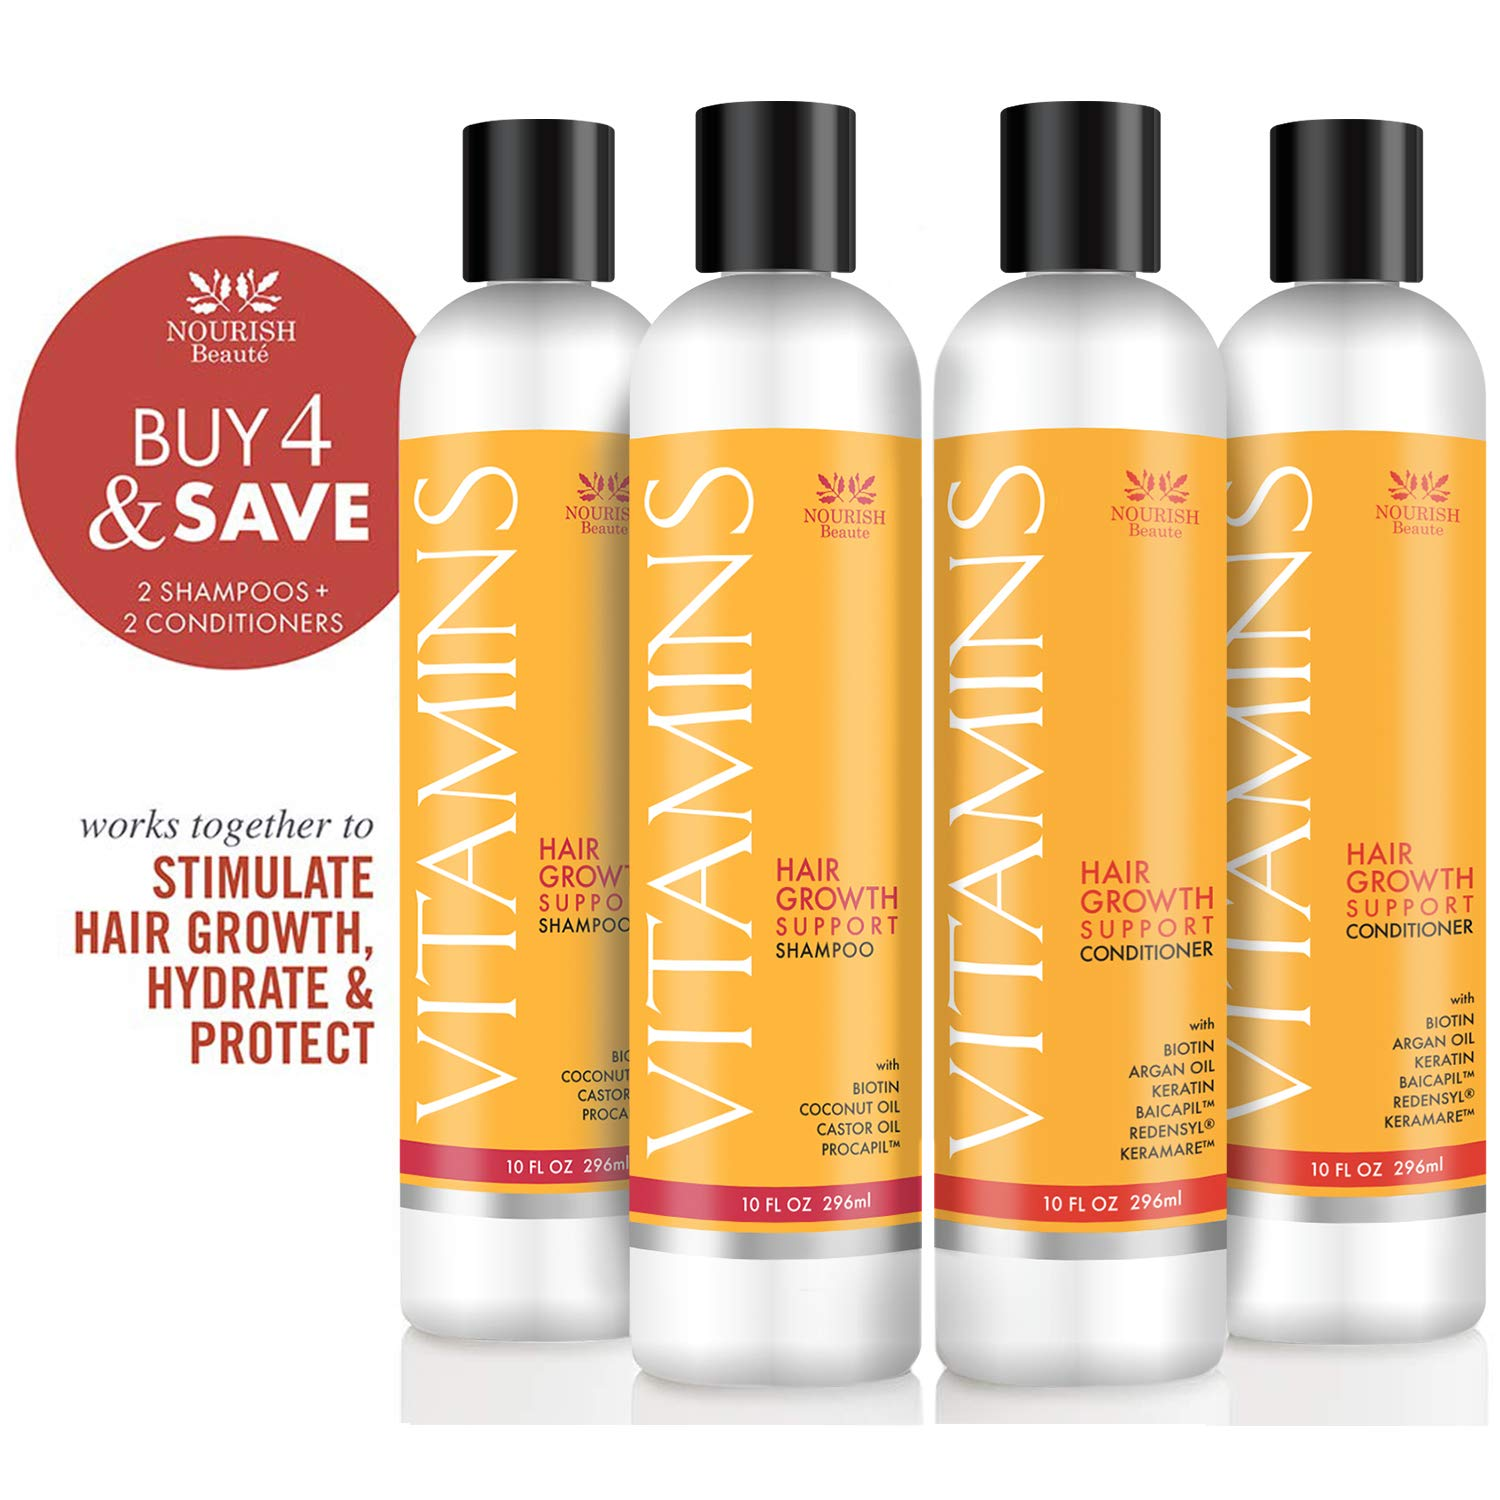 Nourish Beaute Vitamins Shampoo and Conditioner for Hair Loss that Promotes Hair Regrowth, For Men and Women, 2 10 Ounce Bottles of Shampoo and 2 10 Ounce Bottle of Conditioner